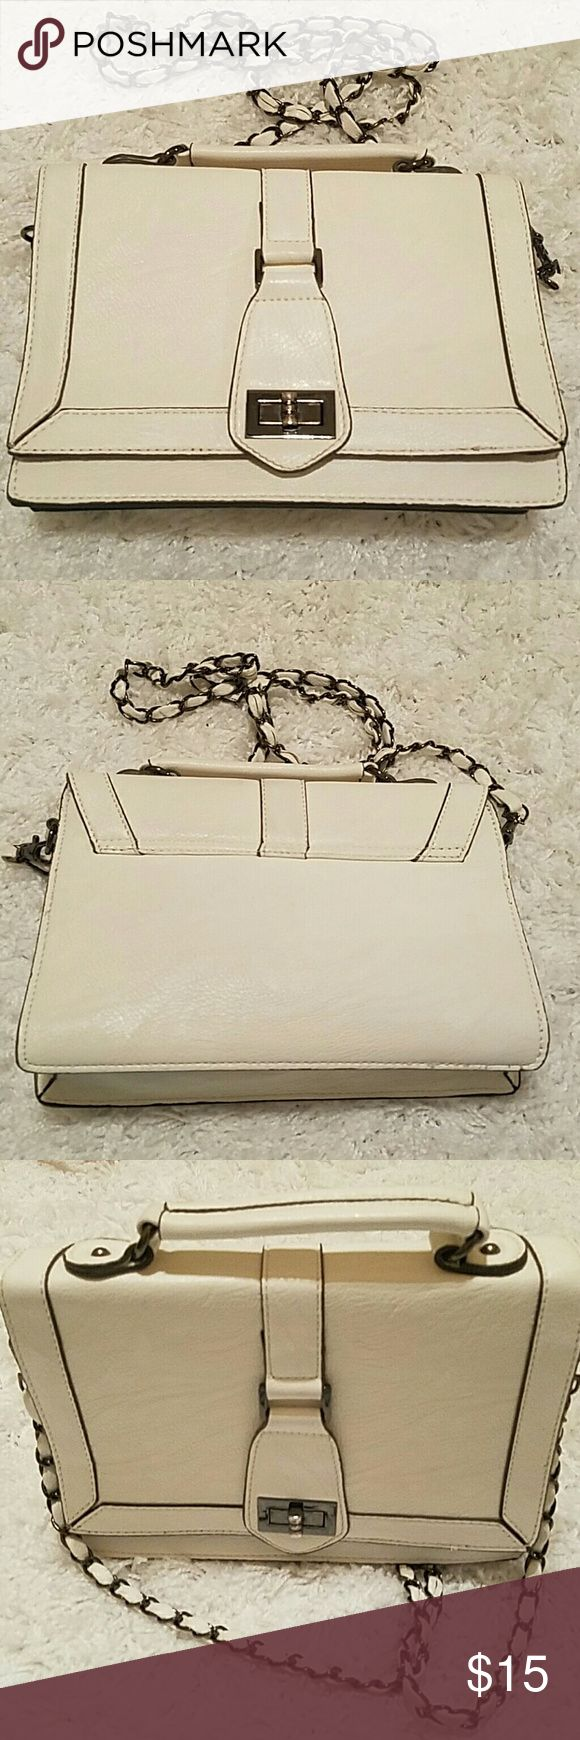 "Melie Bianco Crossbody Bag White Cross-body! 10x7  drop 25"". Very good condition. Melie Bianco Bags"